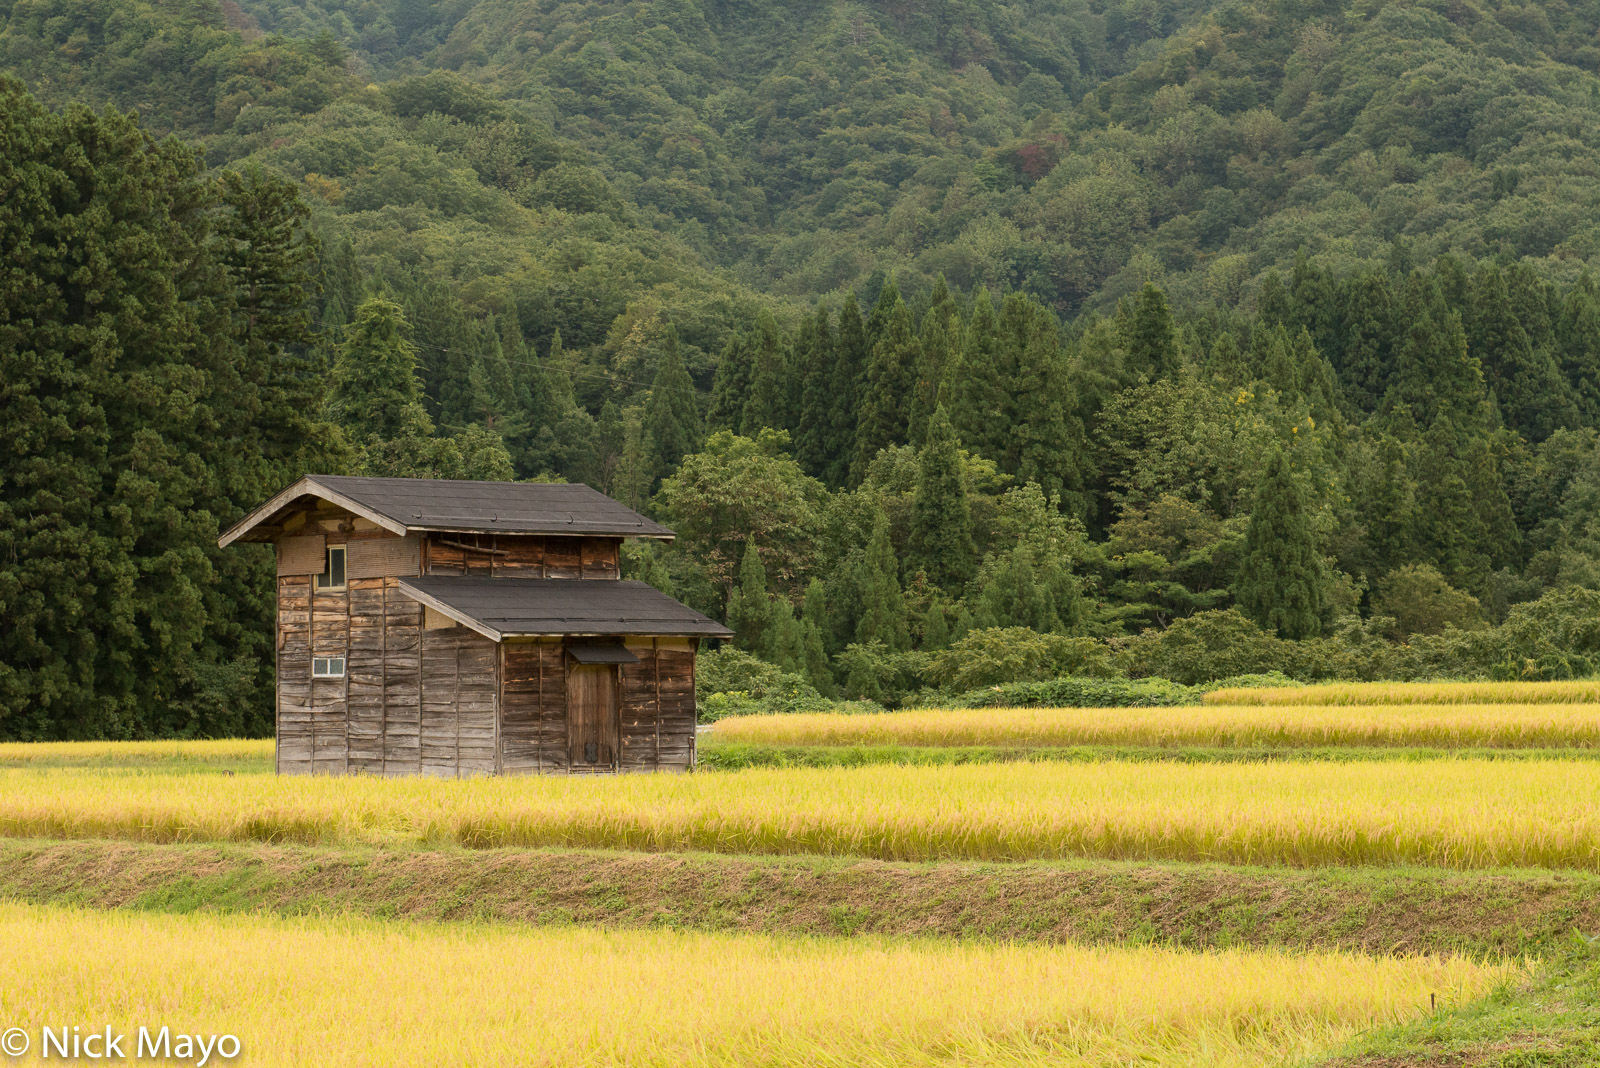 Chubu, Hut, Japan, Paddy, photo